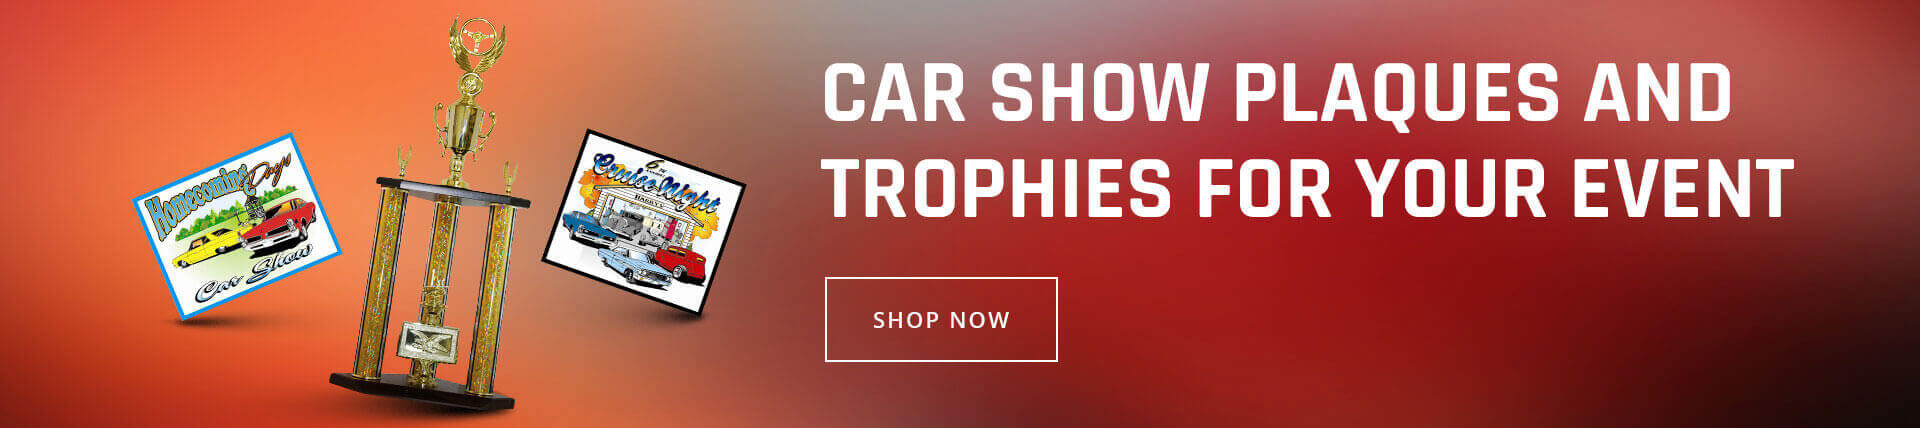 Car Show Plaques and Trophies Banner